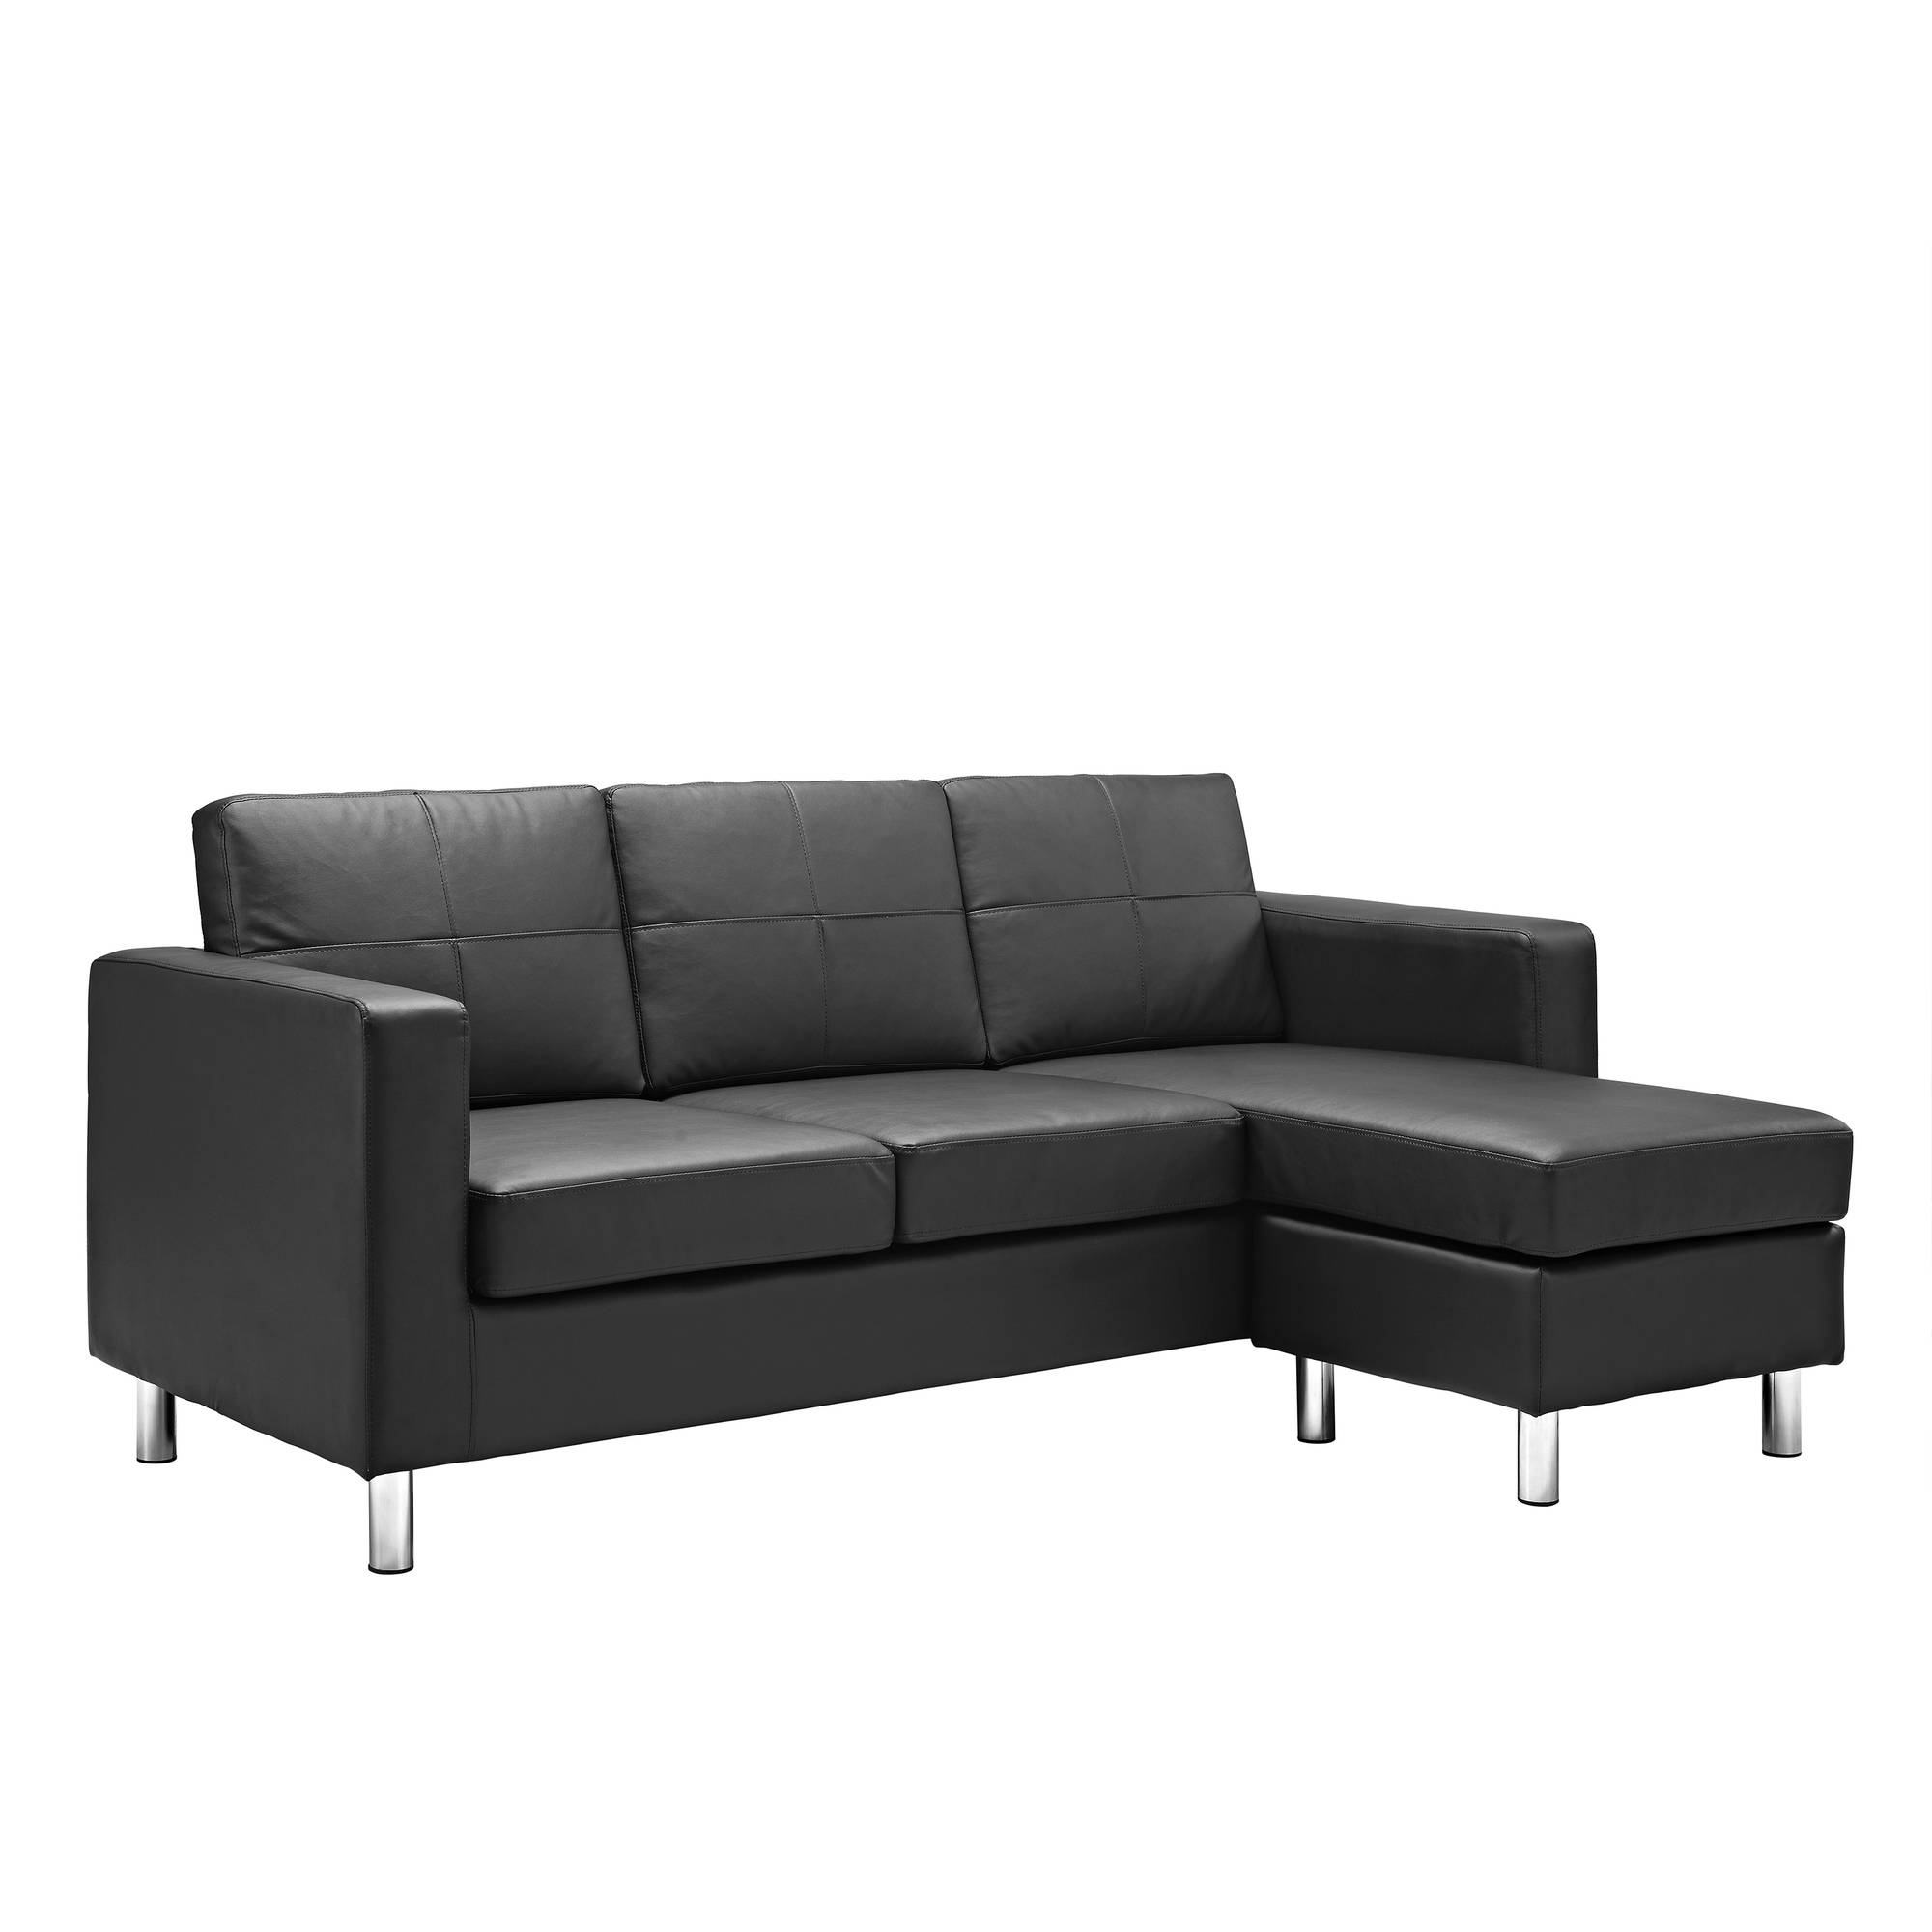 Dorel Living Small Spaces Configurable Sectional Sofa Multiple Throughout Small Sectional Sofa (#4 of 12)